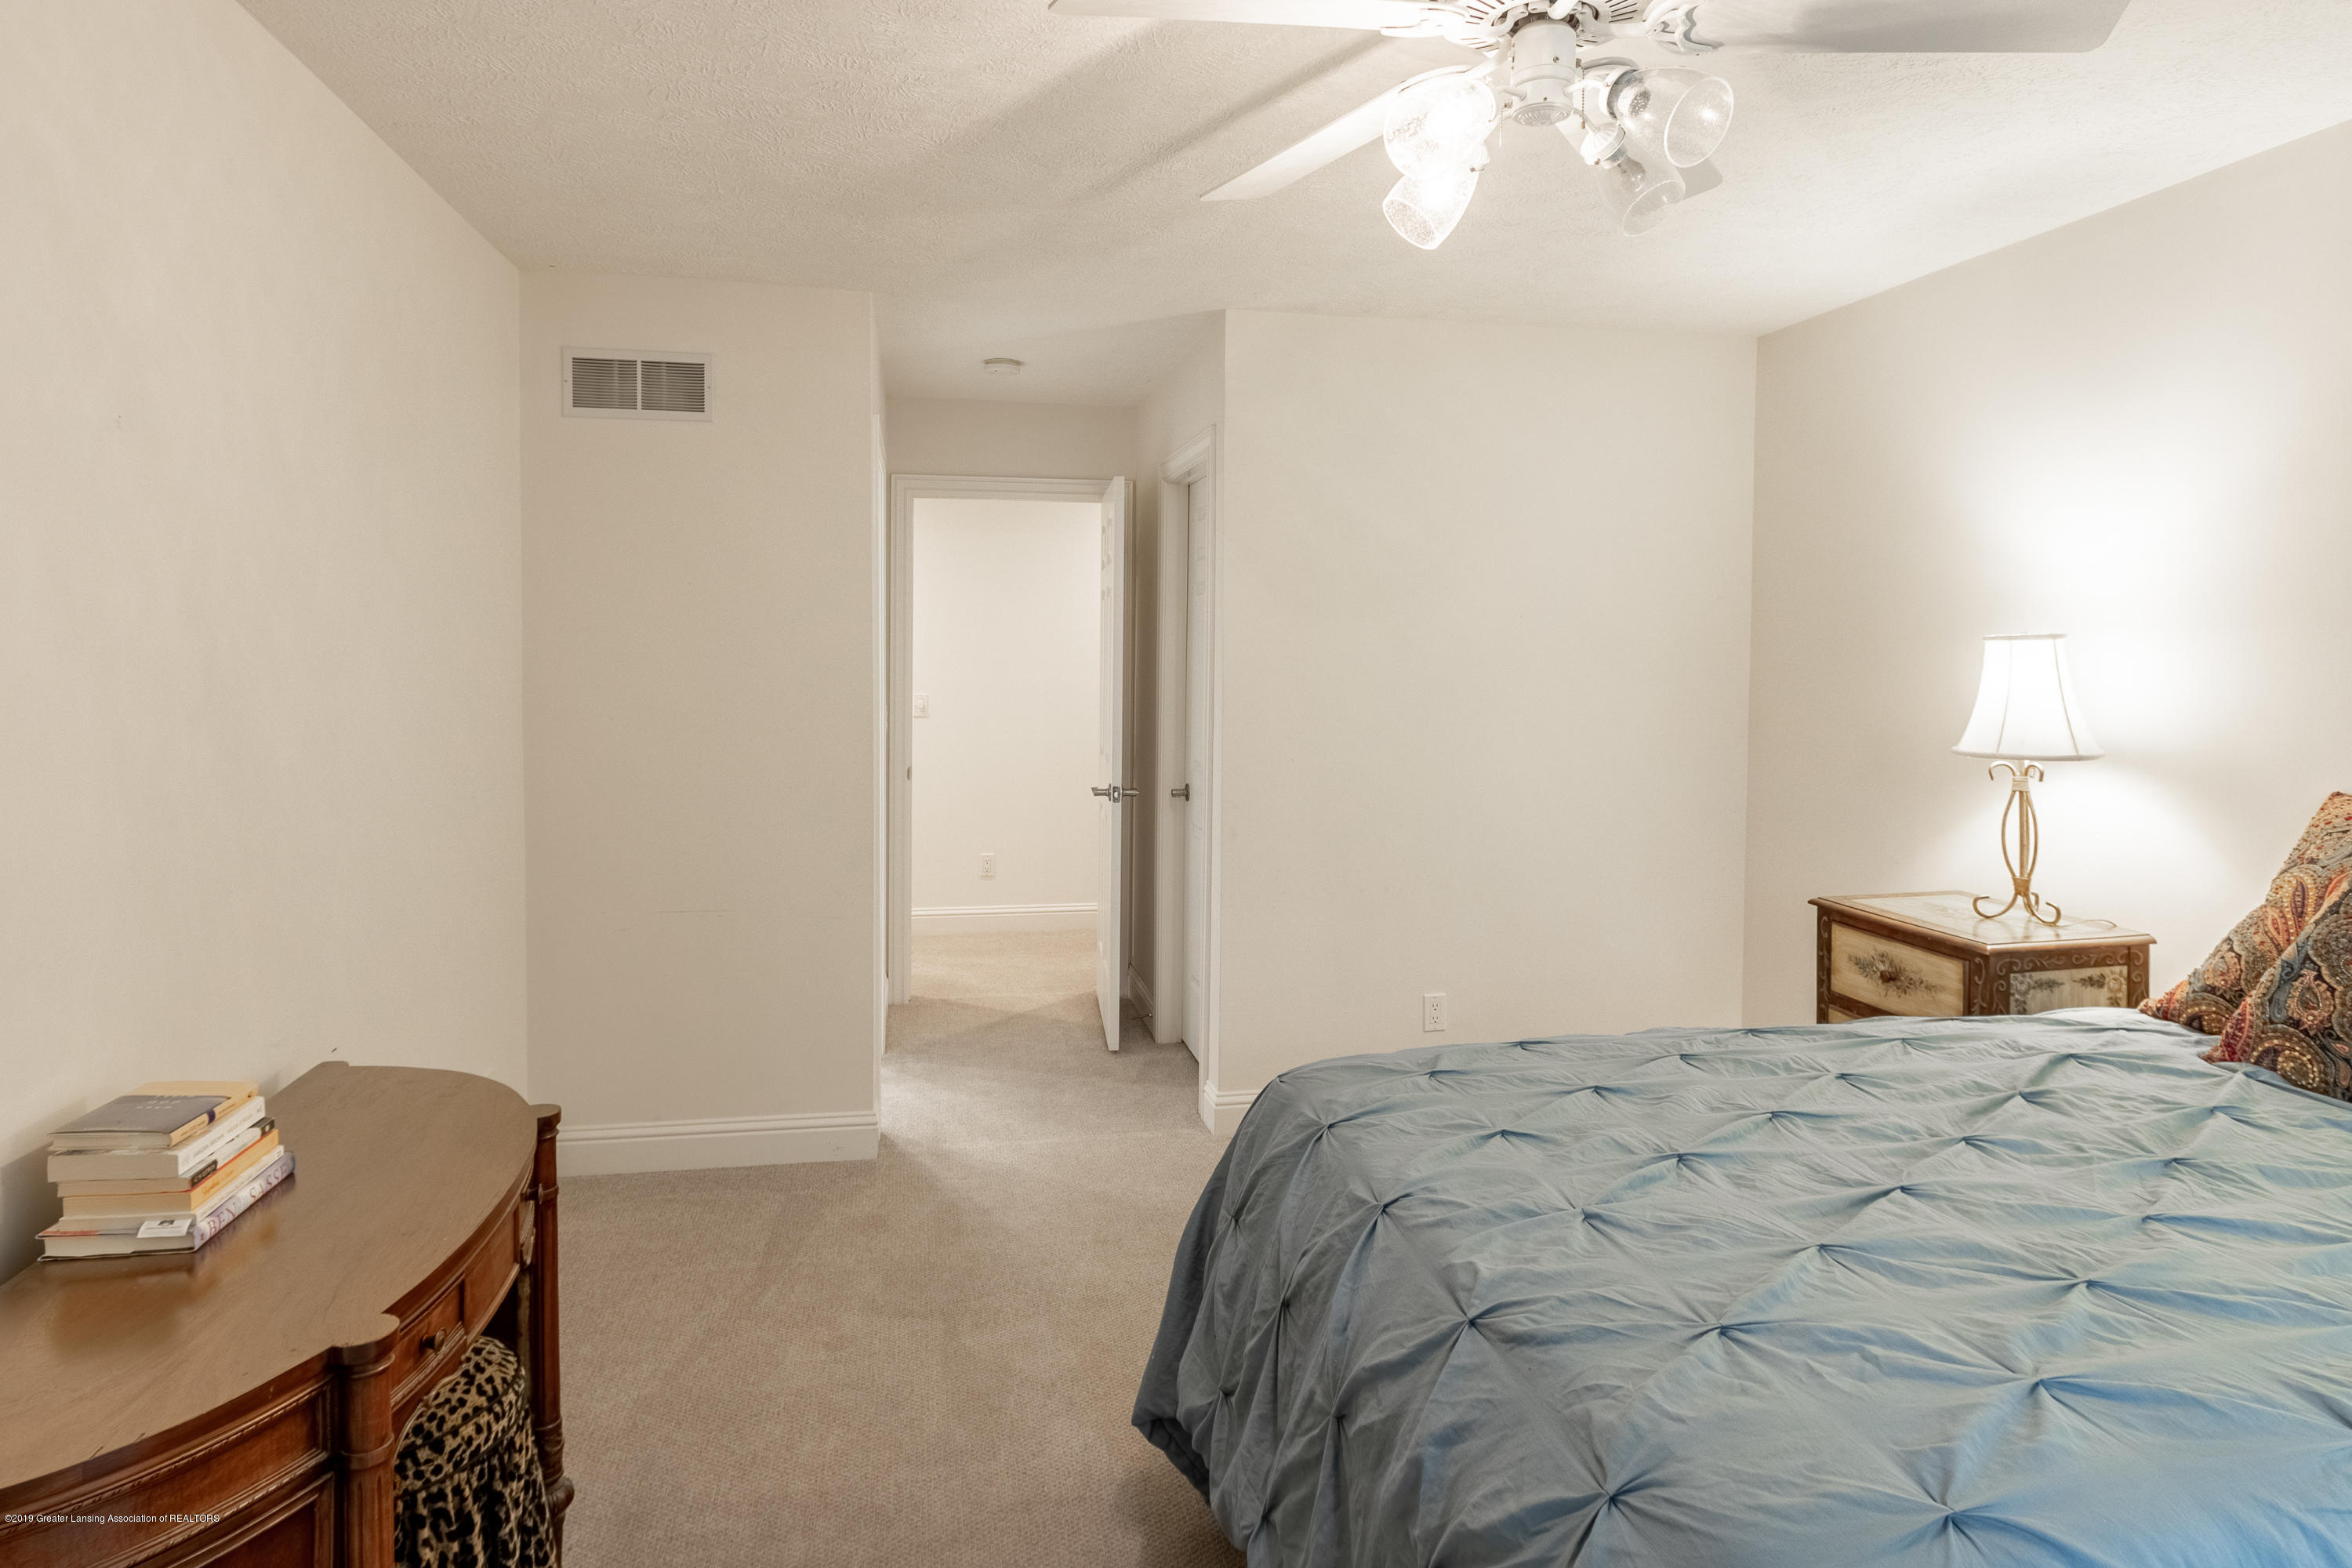 3700 Beech Tree Ln - BEDROOM 3 - 50